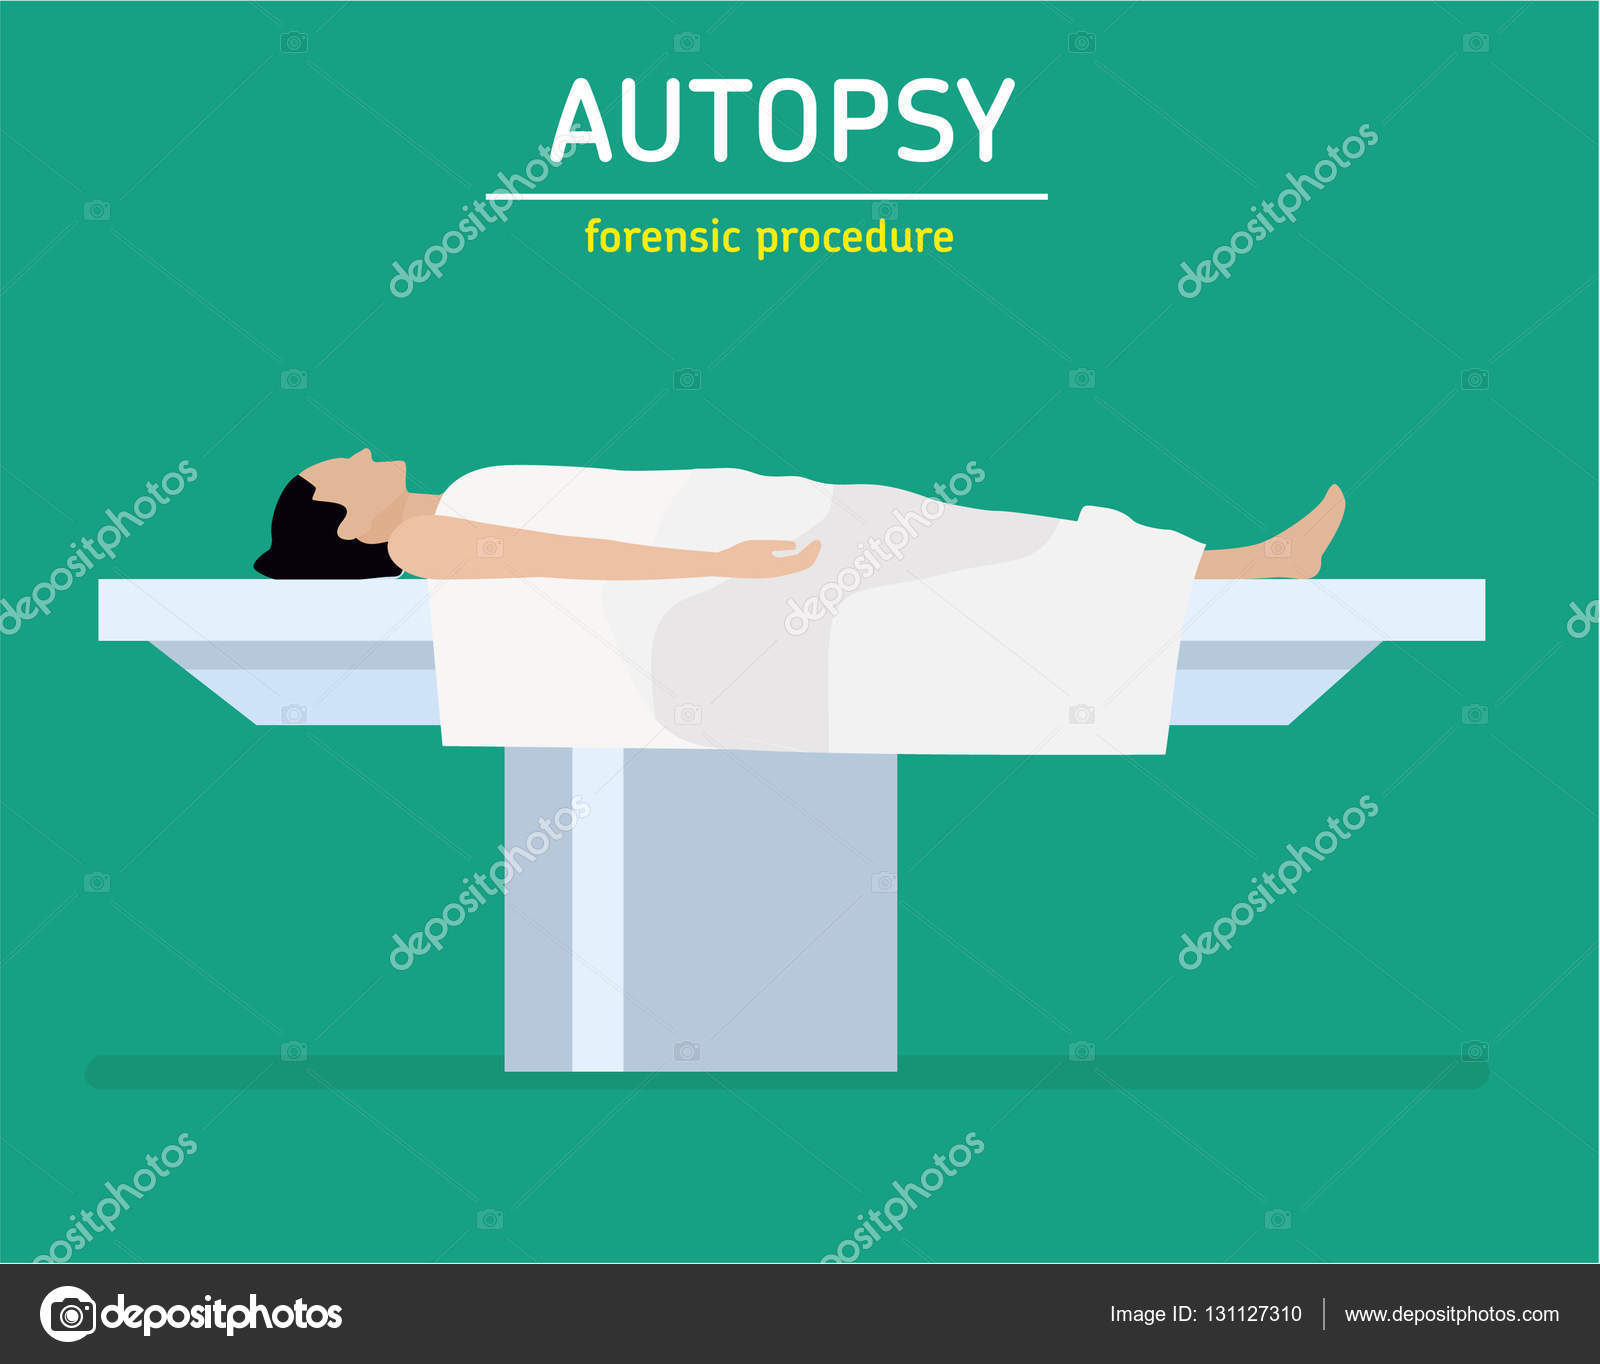 Illustration De Plate Procedure Judiciaire L Autopsie La Femme